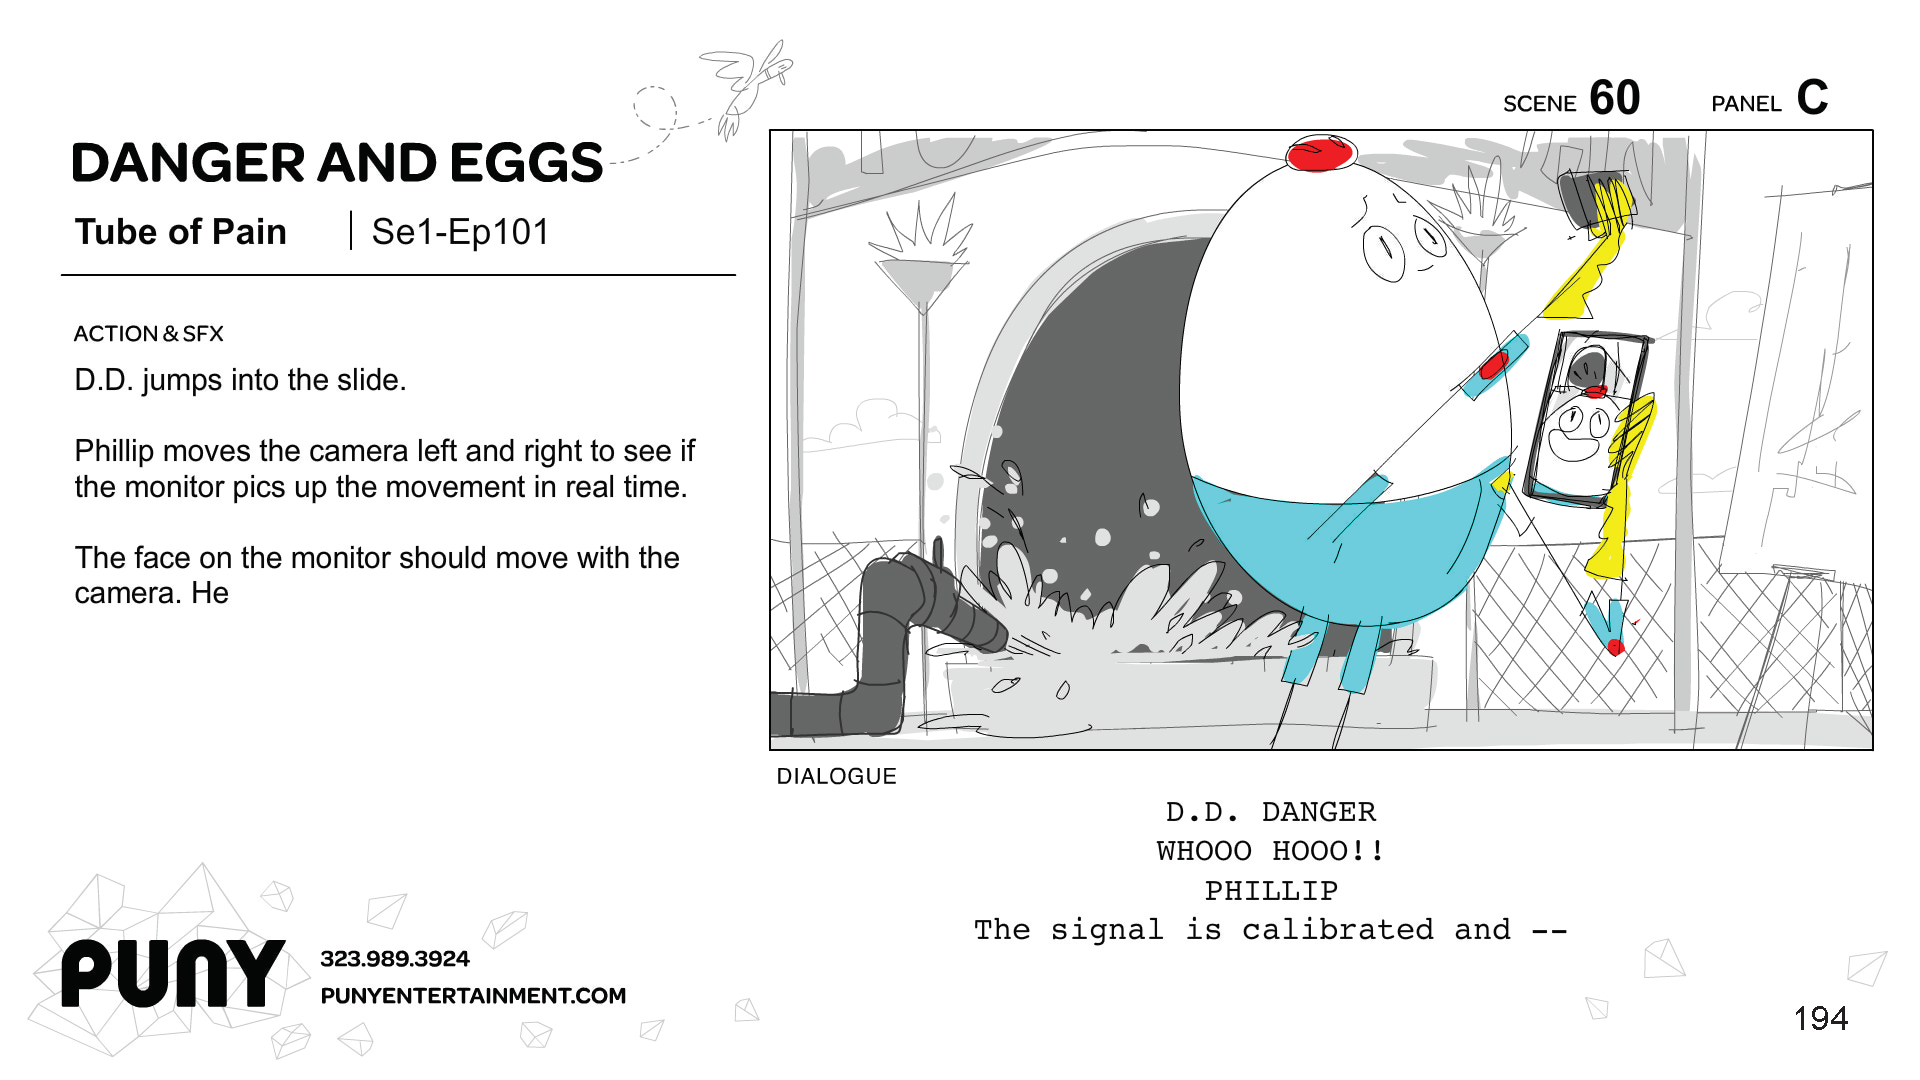 MikeOwens_STORYBOARDS_DangerAndEggs_Page_194.png